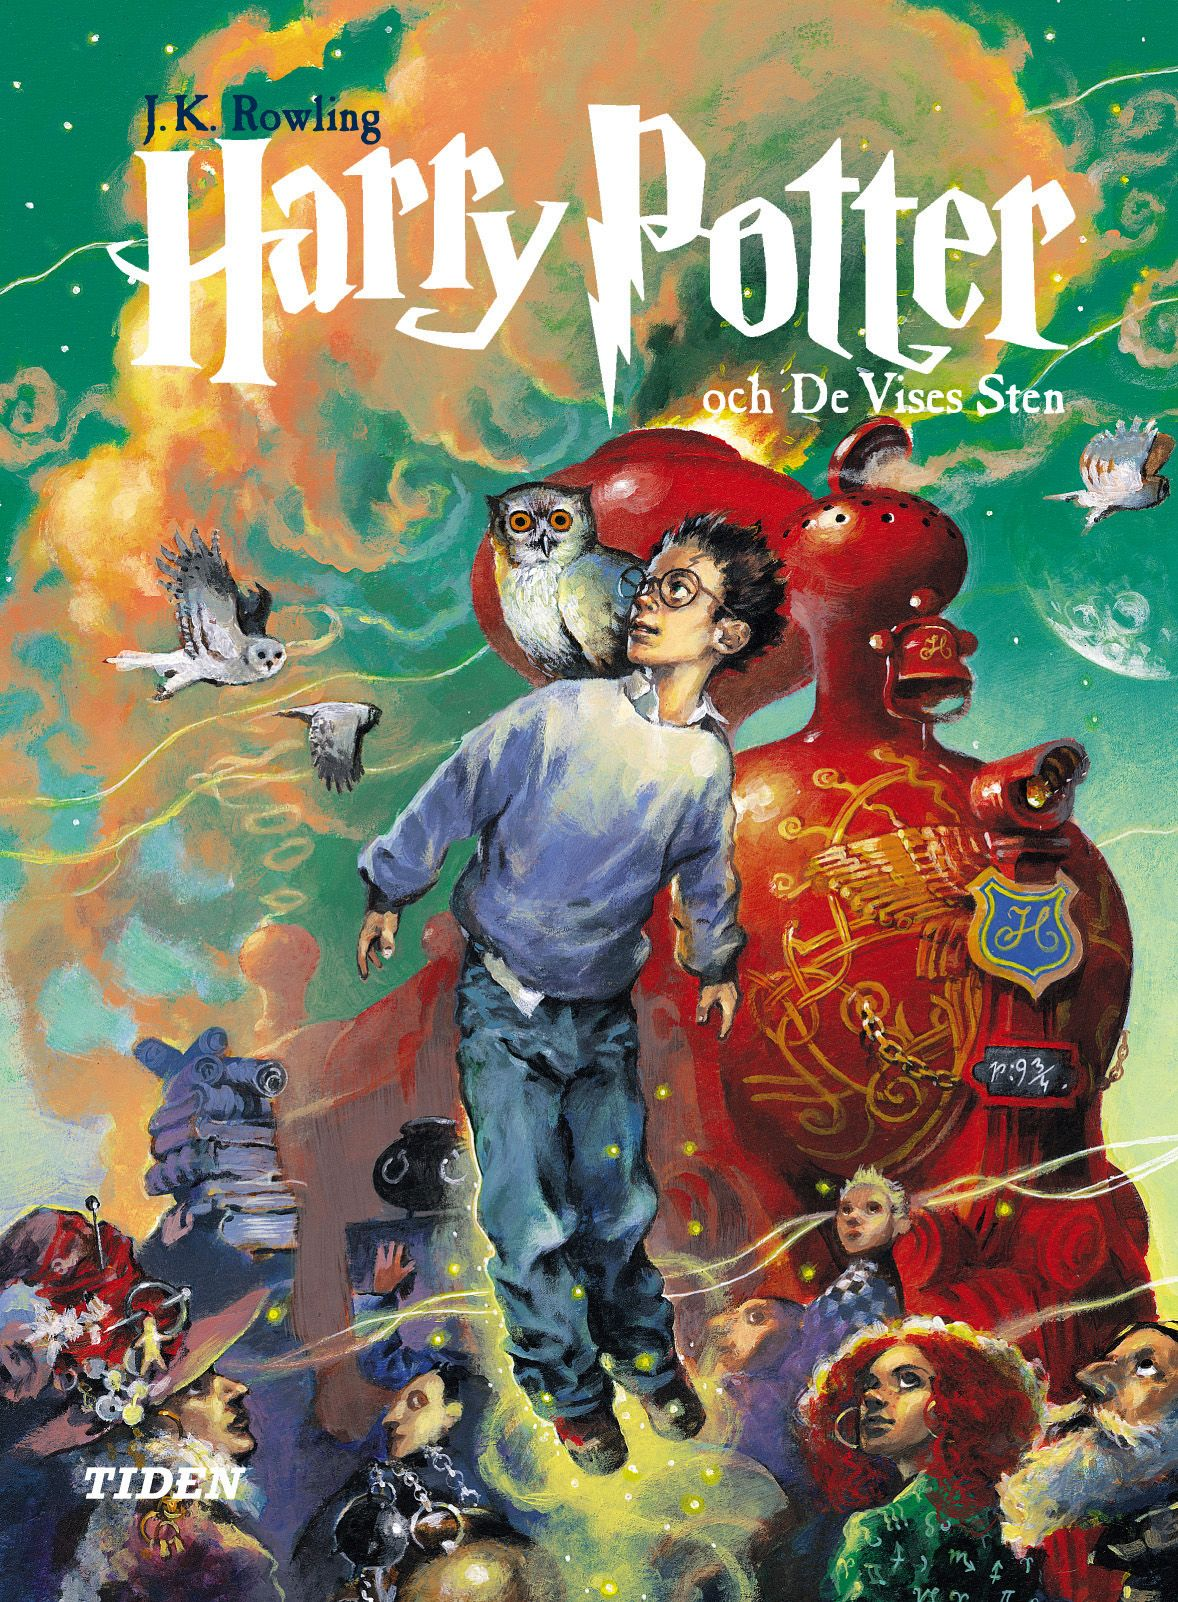 Alvaro Tapia Swedish Harry Potter Covers Harry Potter